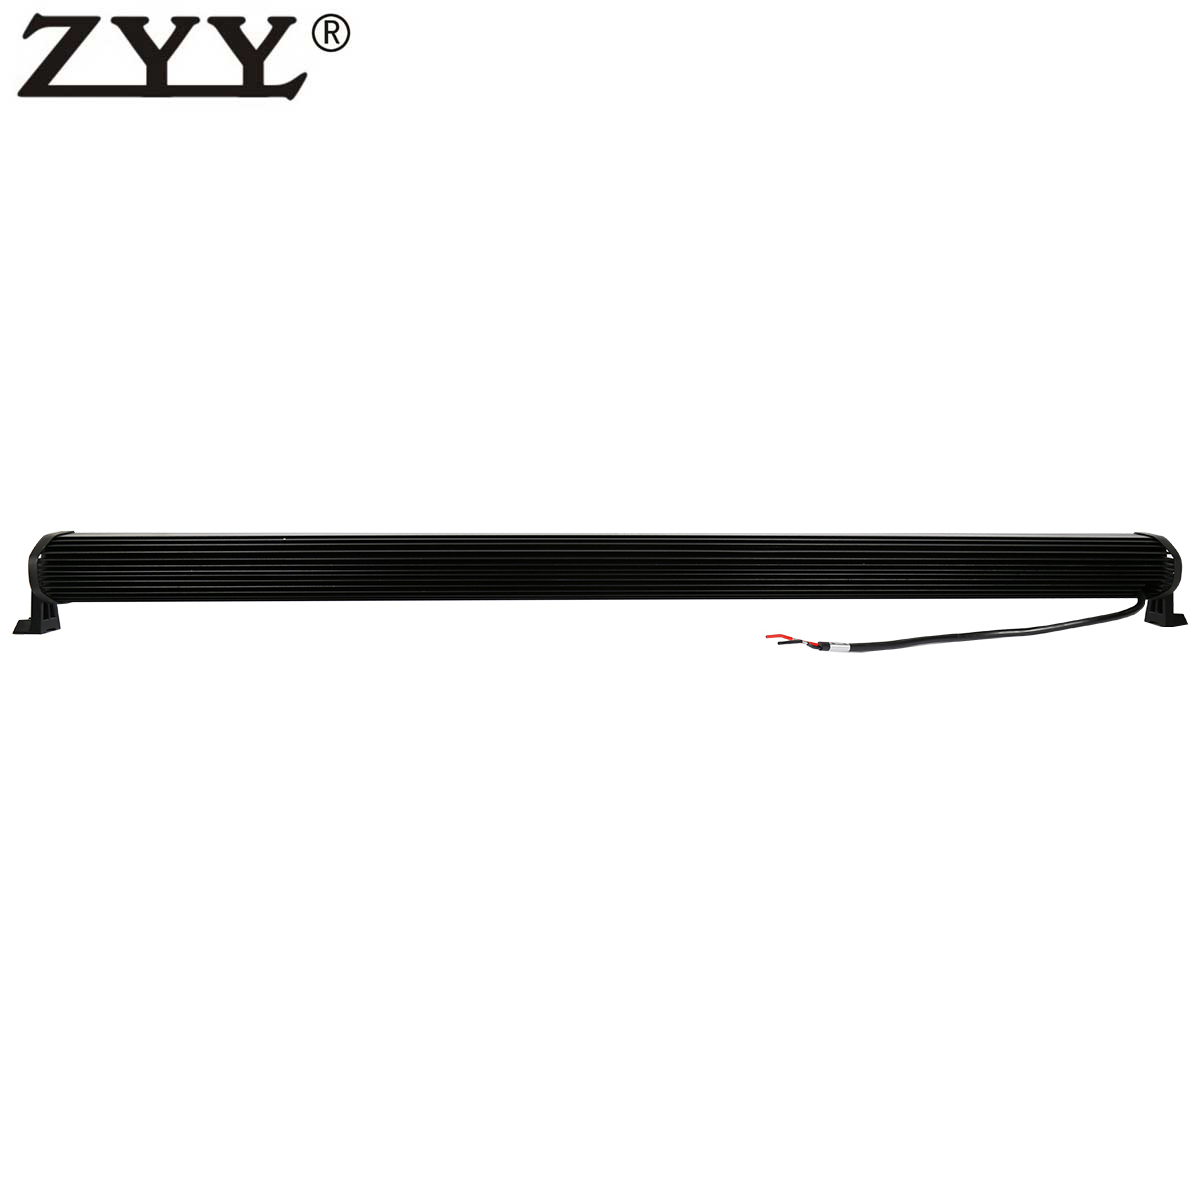 54 Quot 300w 100x Zyy Led Flood Spot Combo Beam Work Light Bar